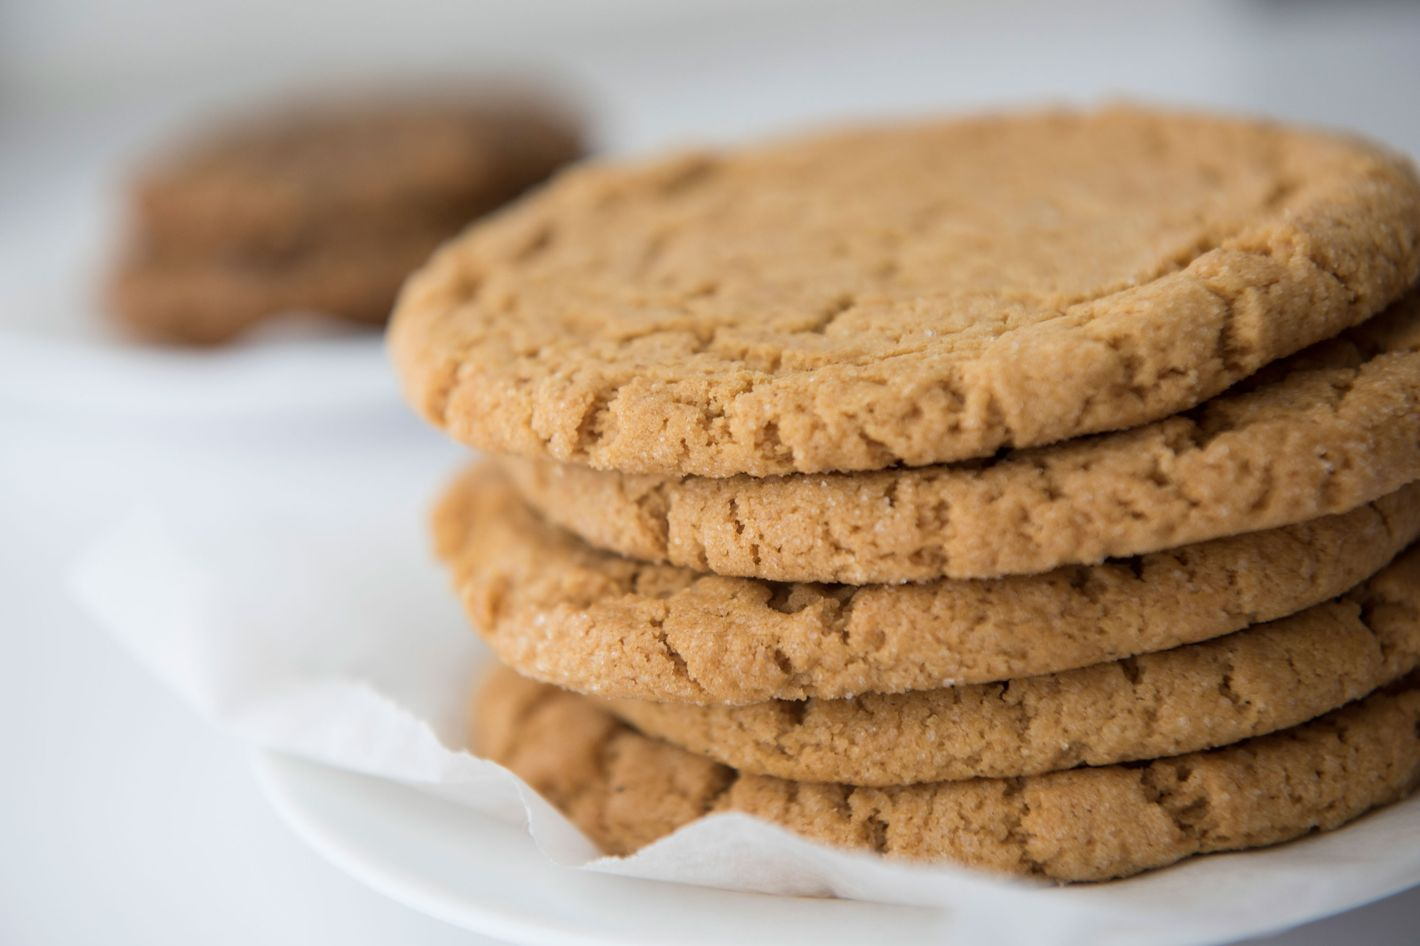 The peanut-butter cookies are a nod to Ted & Honey, the café's predecessor (and beloved neighborhood cookie dealer).